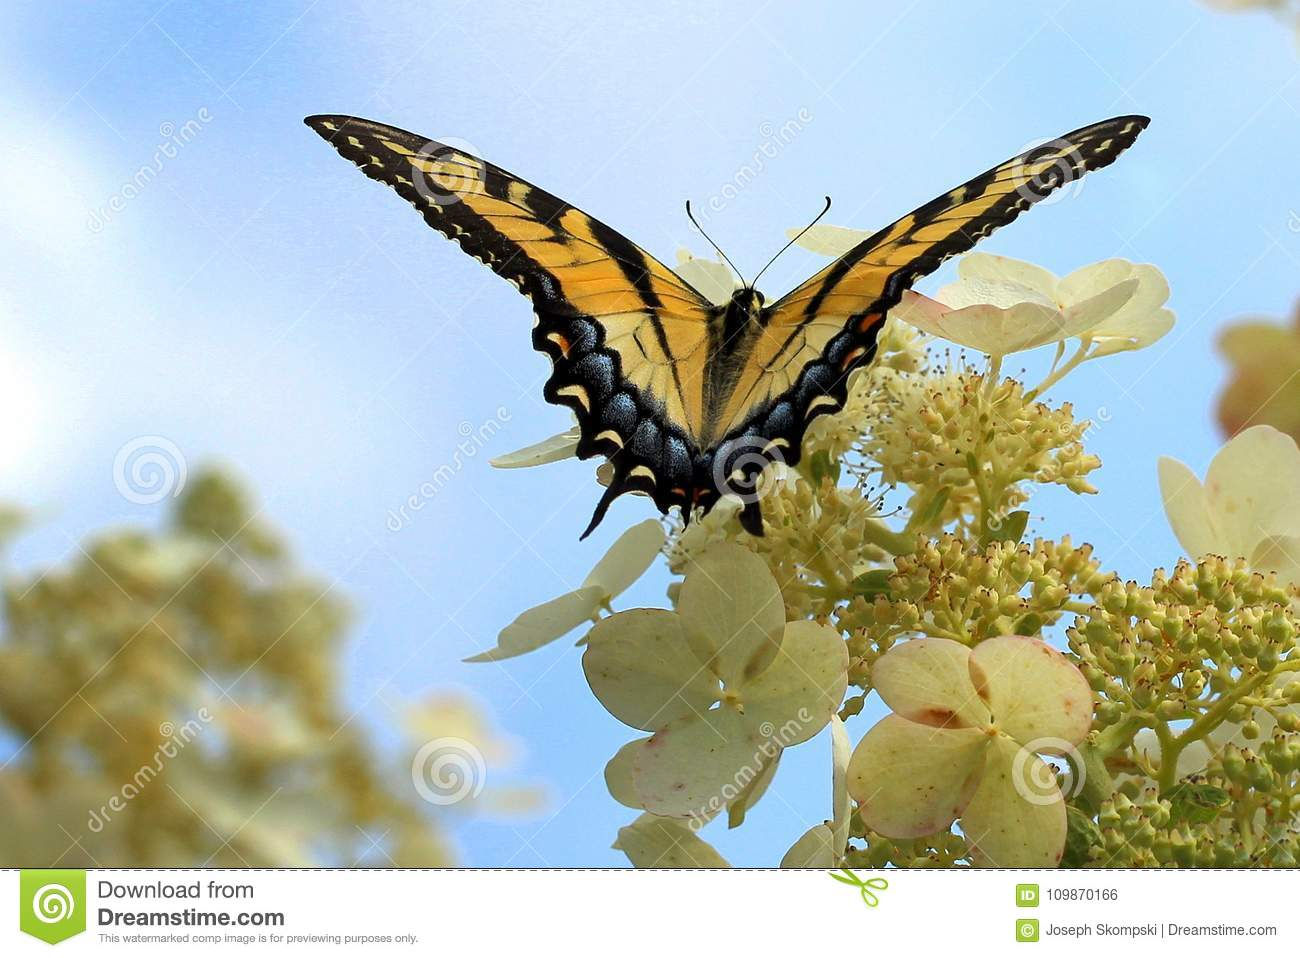 Borboleta de Swallowtail do tigre